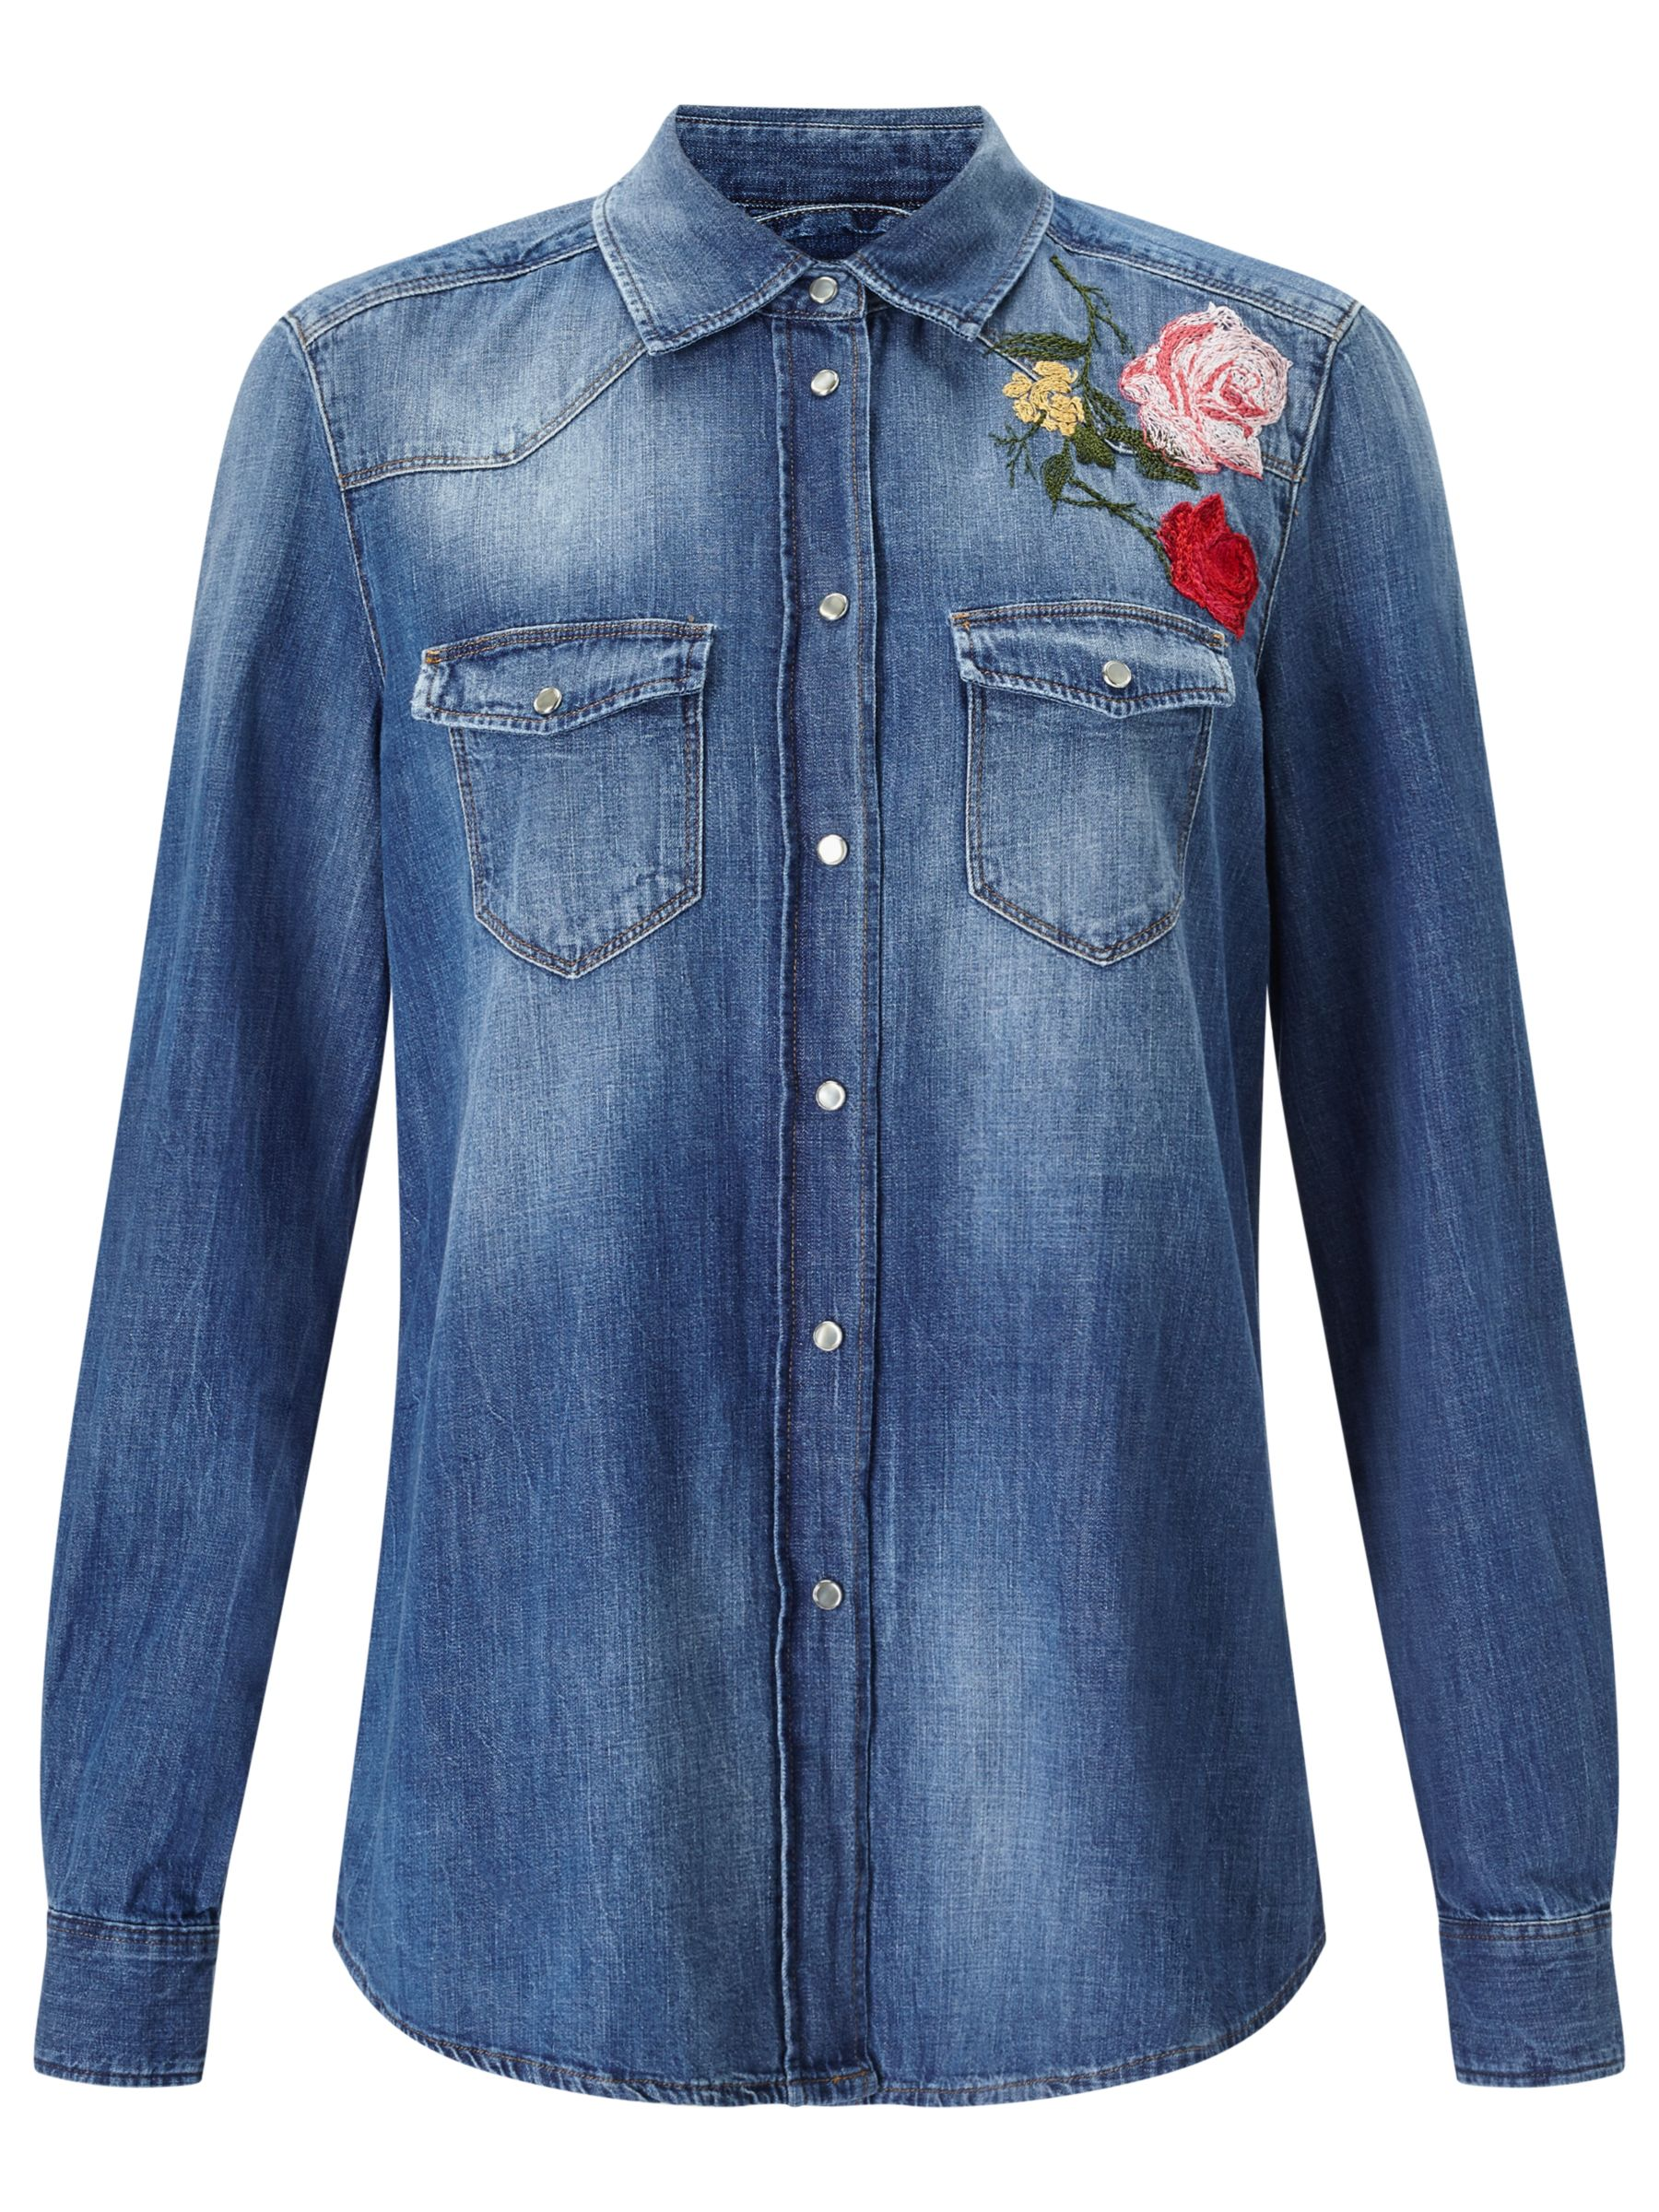 7 For All Mankind 7 For All Mankind Embroidered Flower Shirt, Multi